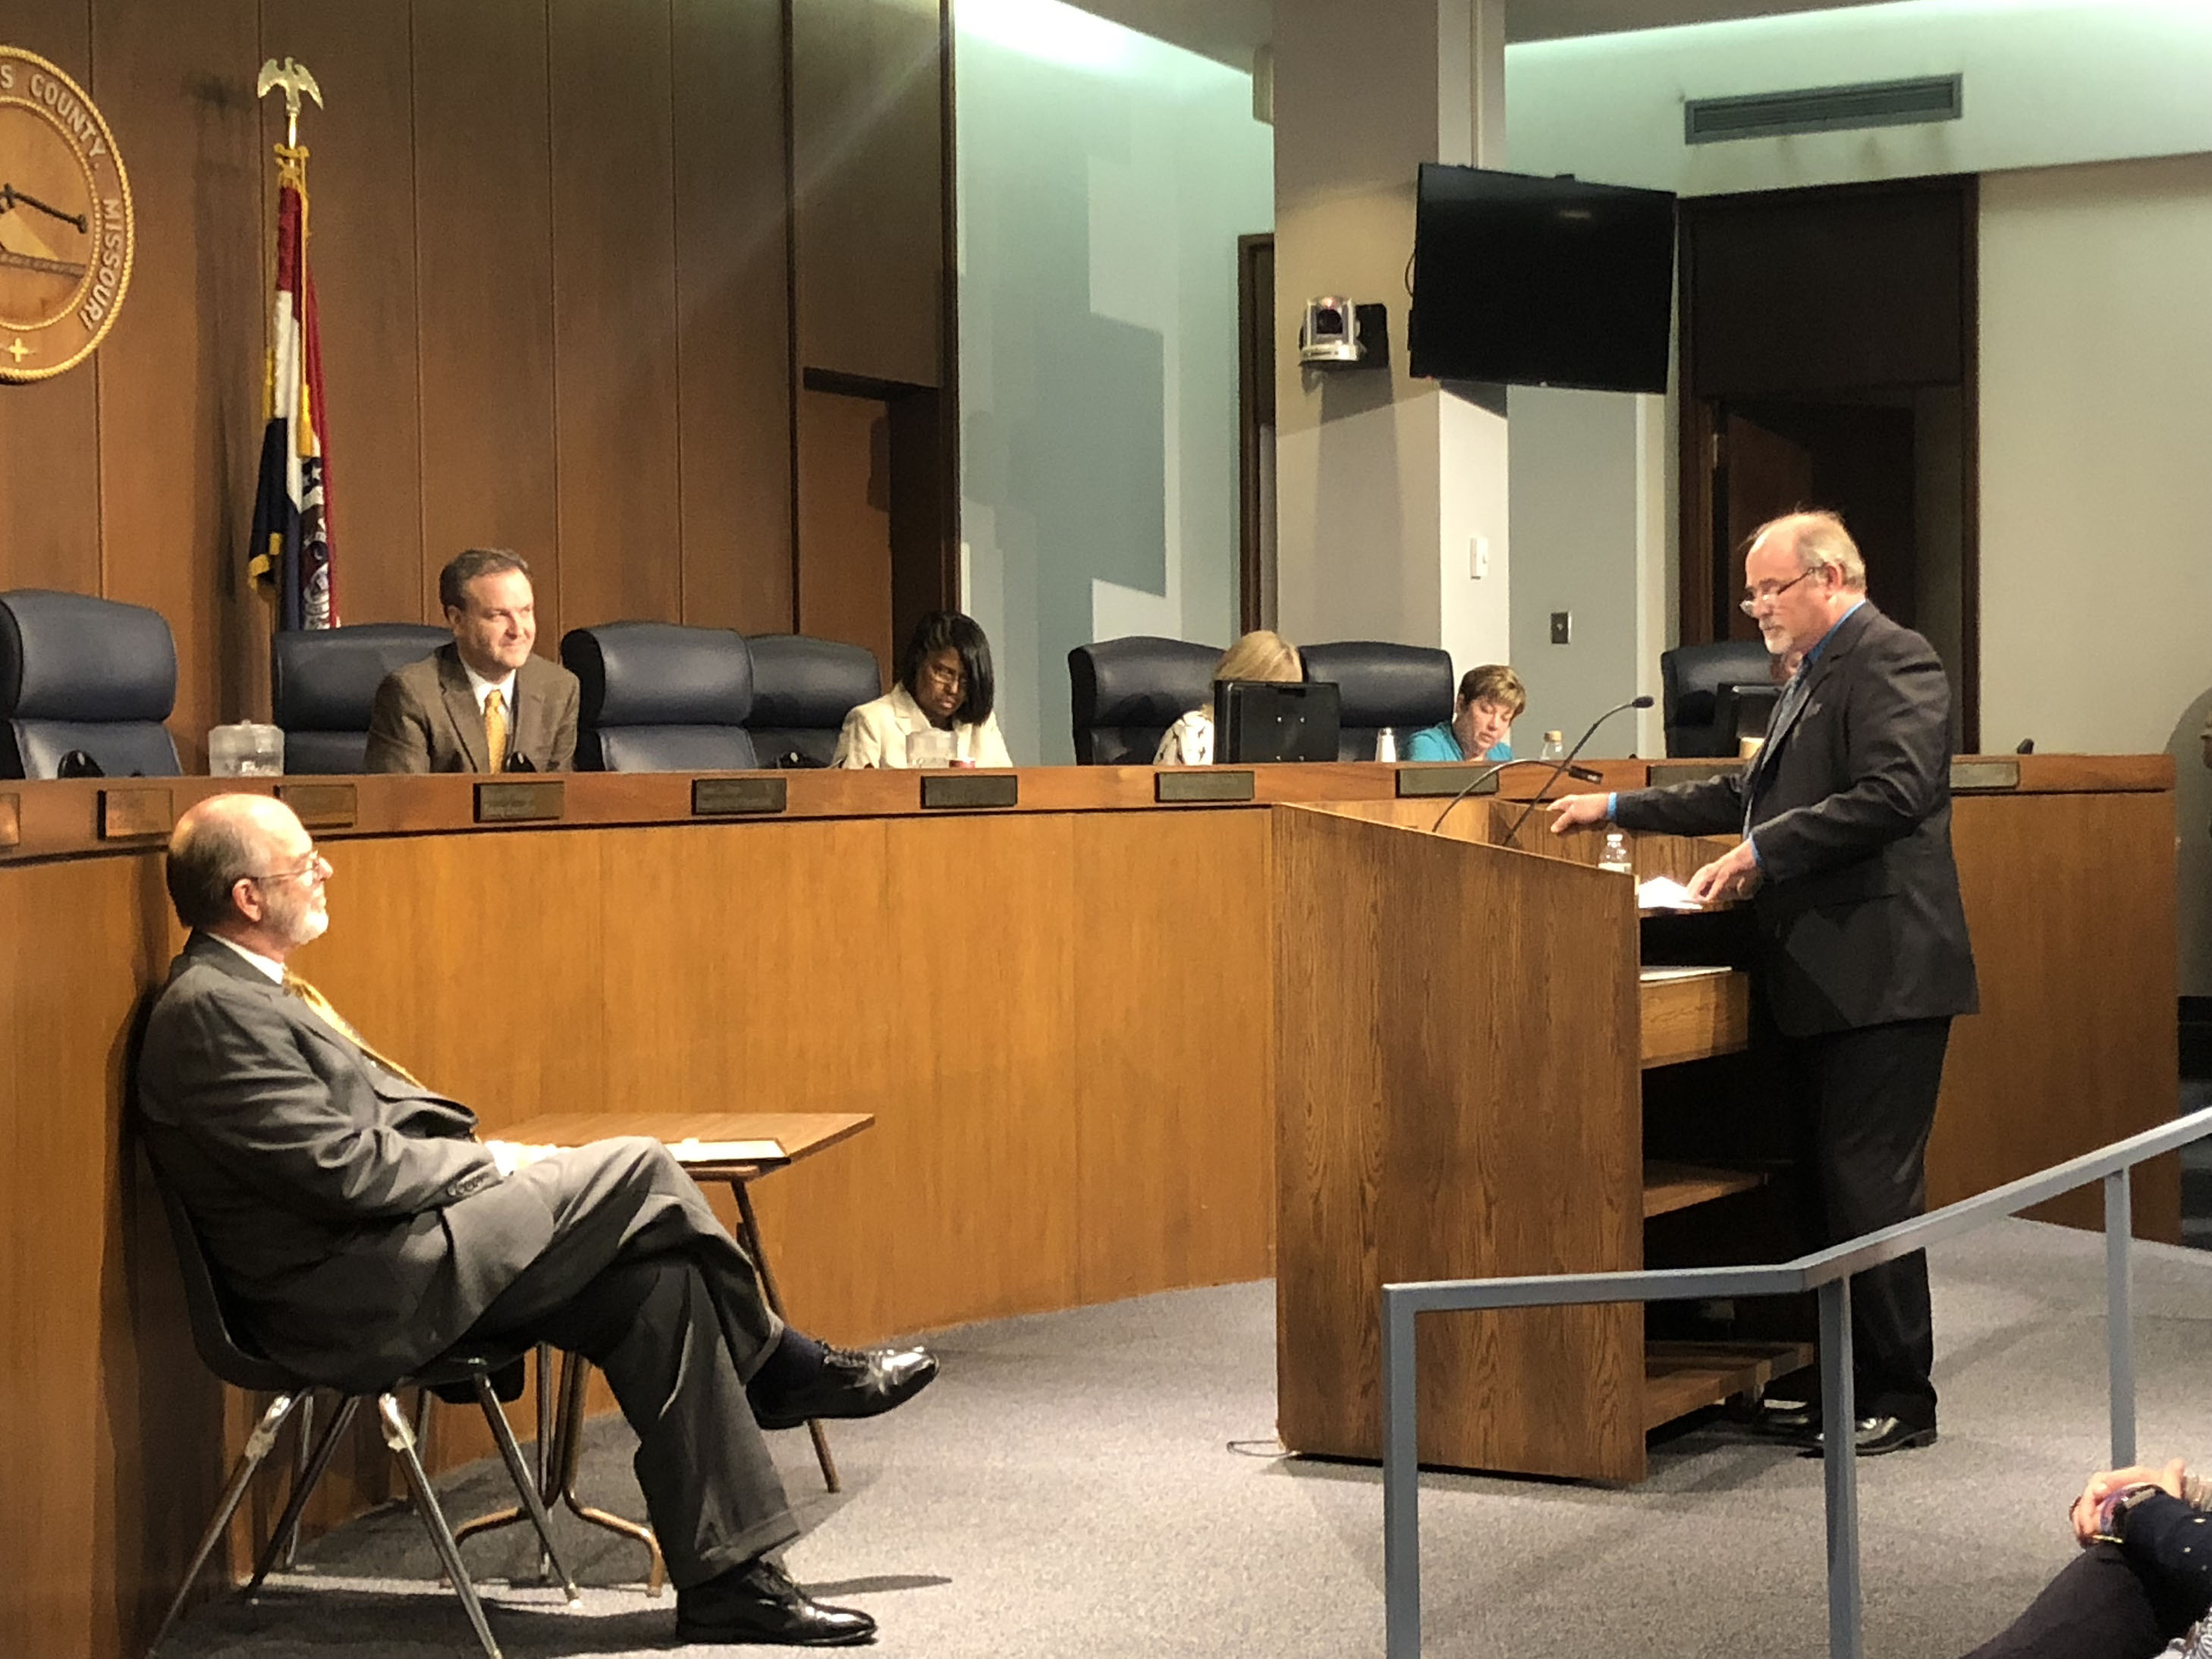 Judge Beach honored during County Council meeting – Clayton